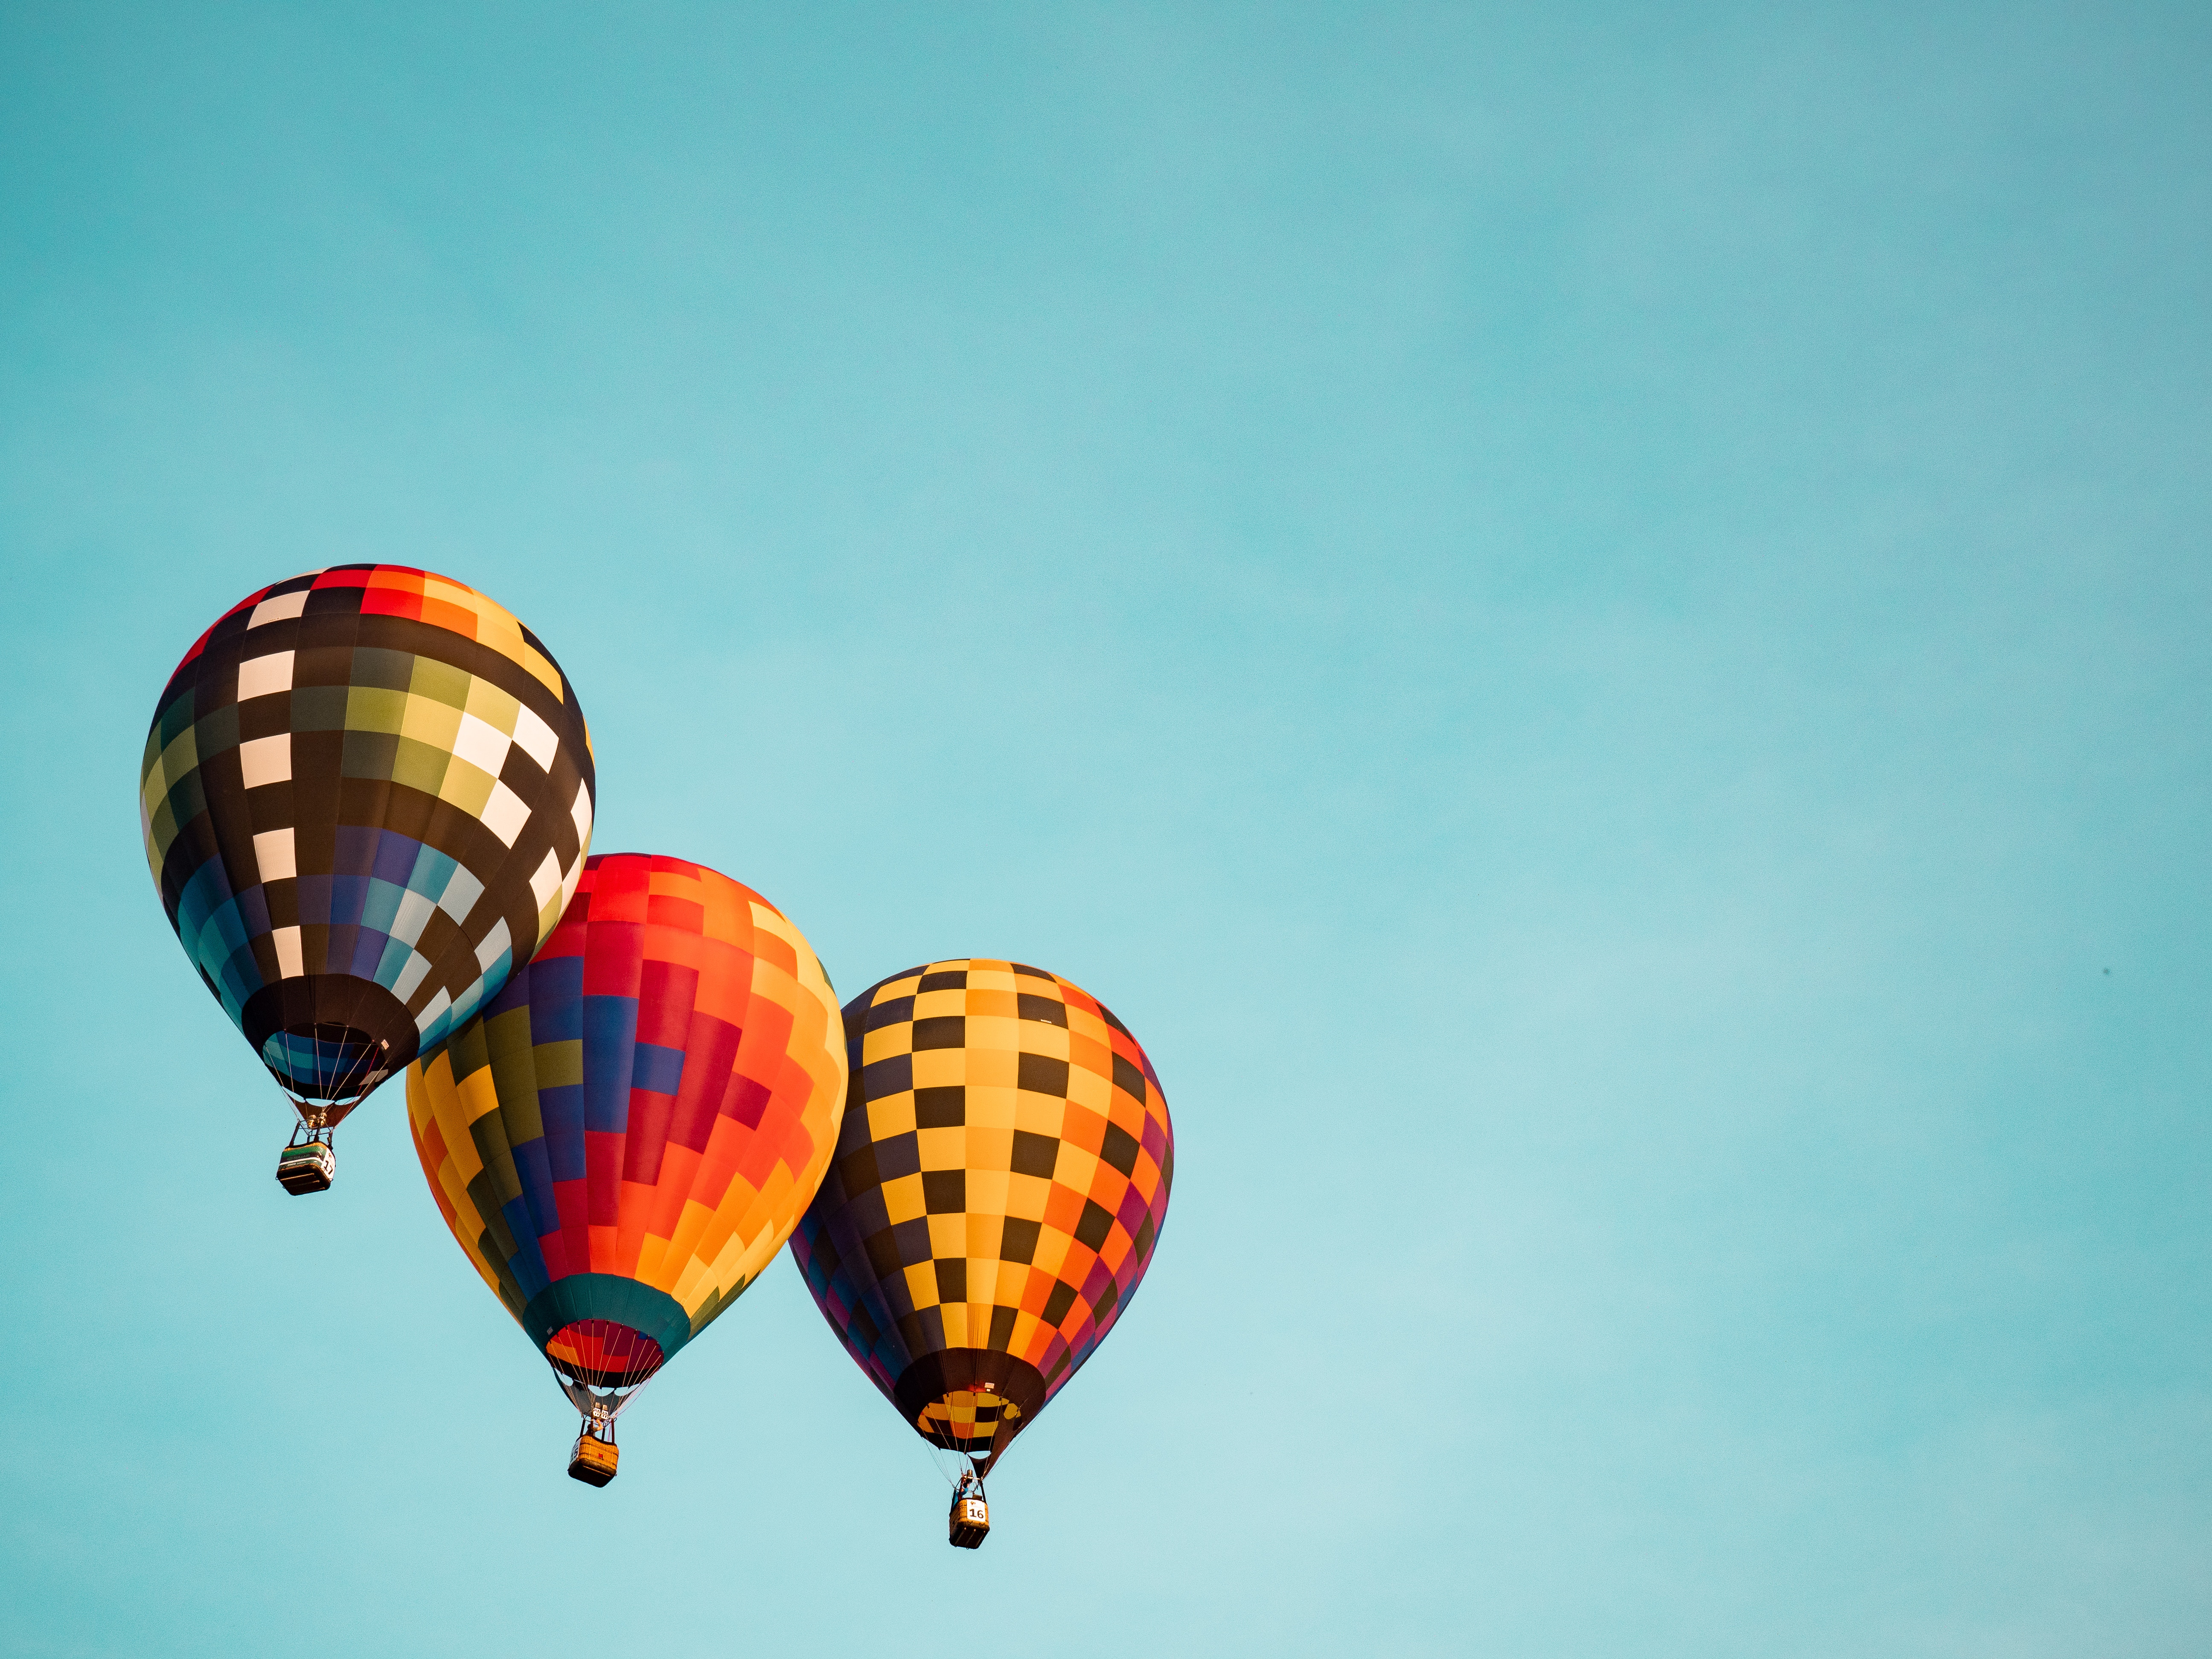 3 brightly coloured hot air balloons against a bright blue sky